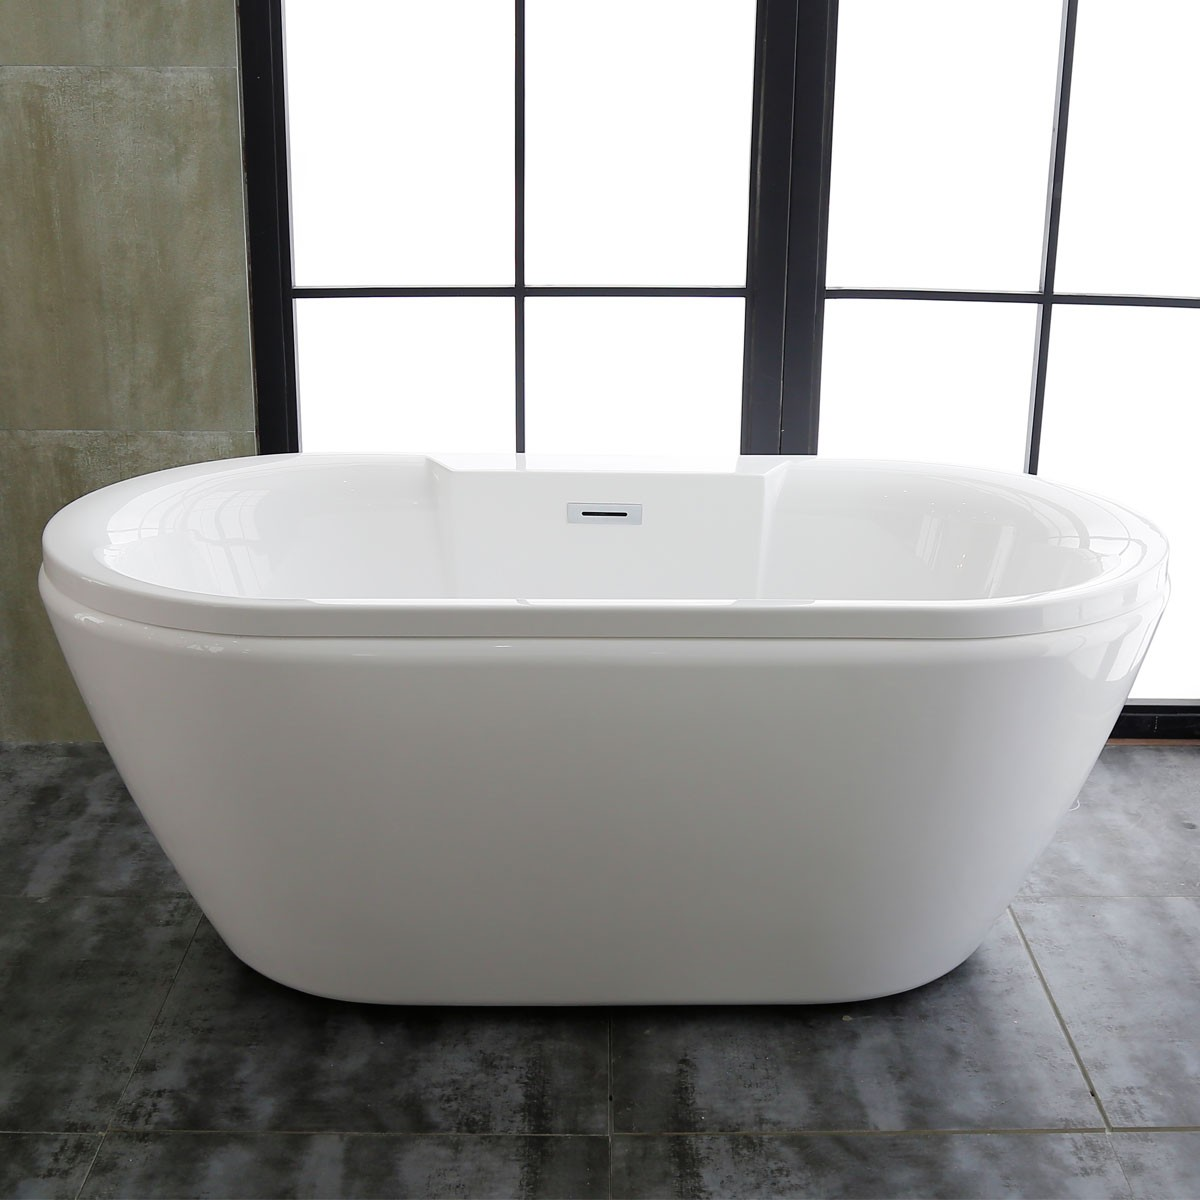 60 In Freestanding Bathtub - Acrylic Pure White (DK-PW-58576)